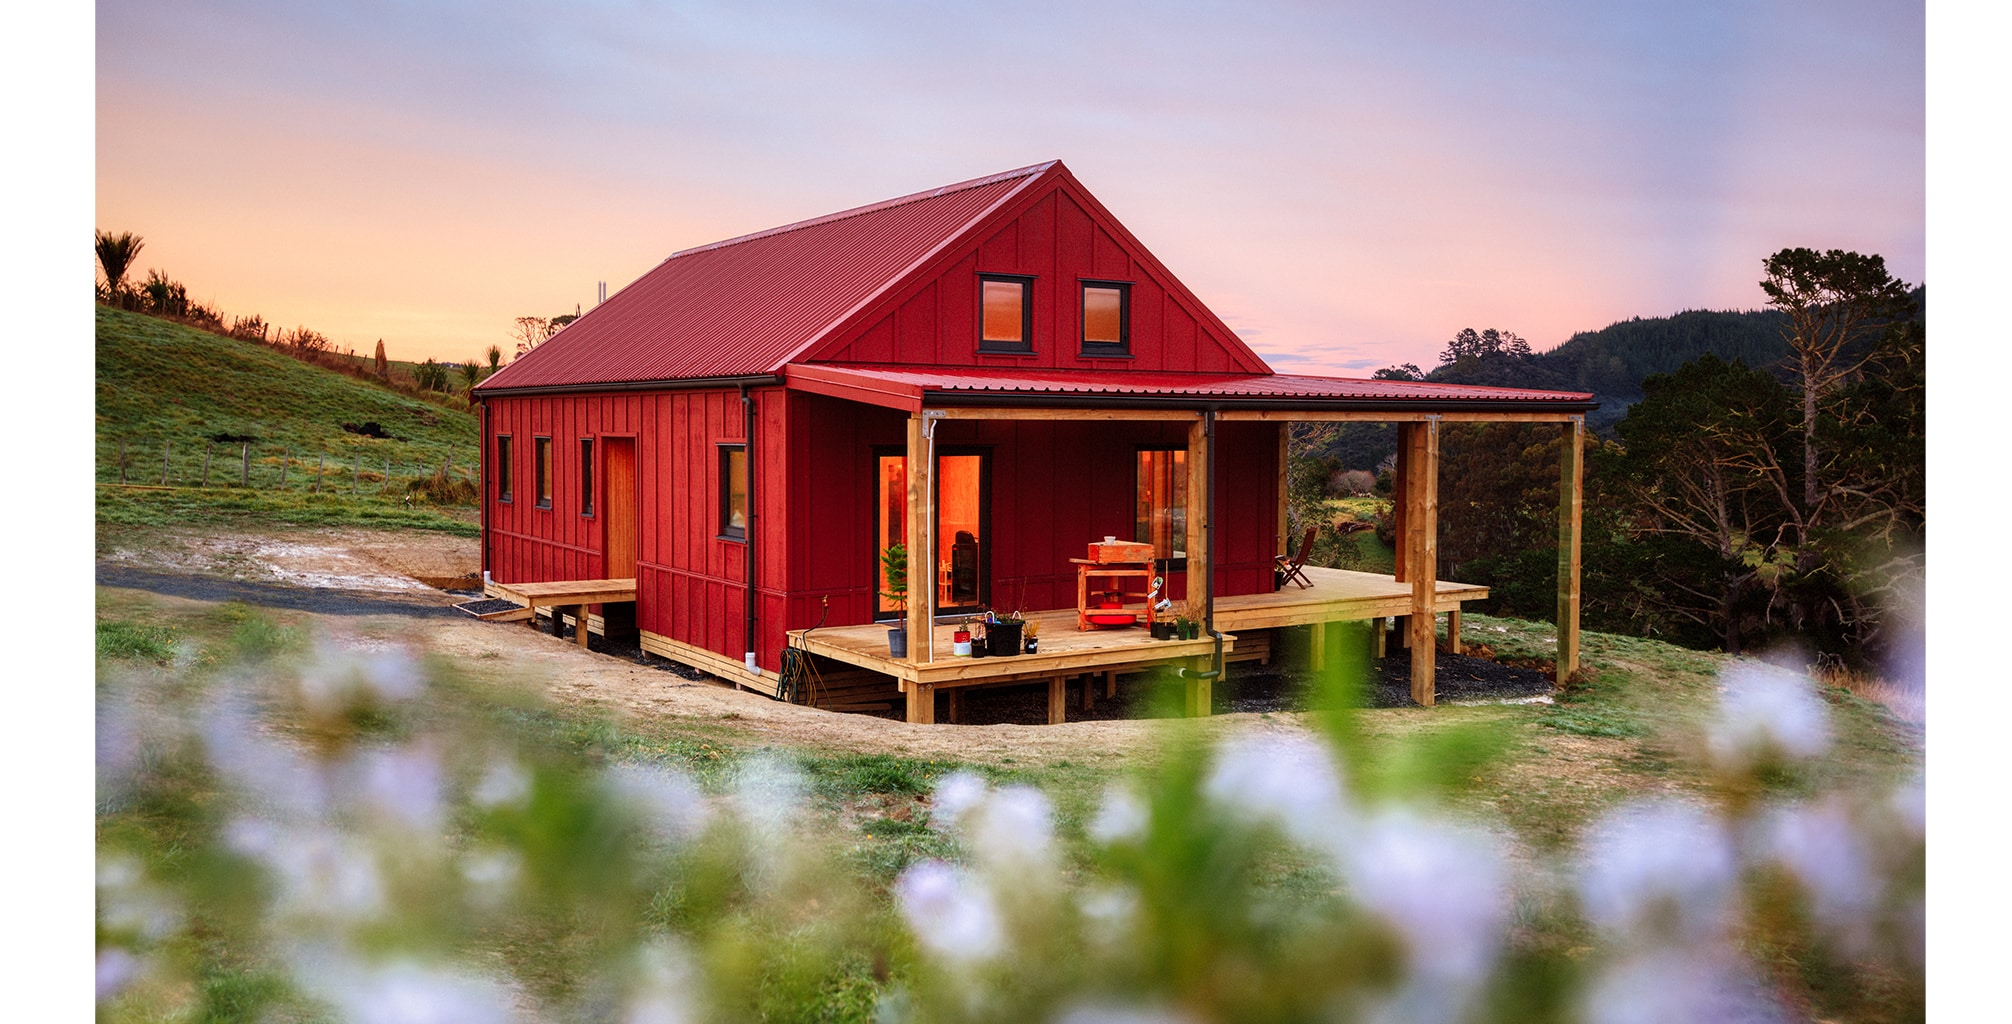 What makes a good passive house?